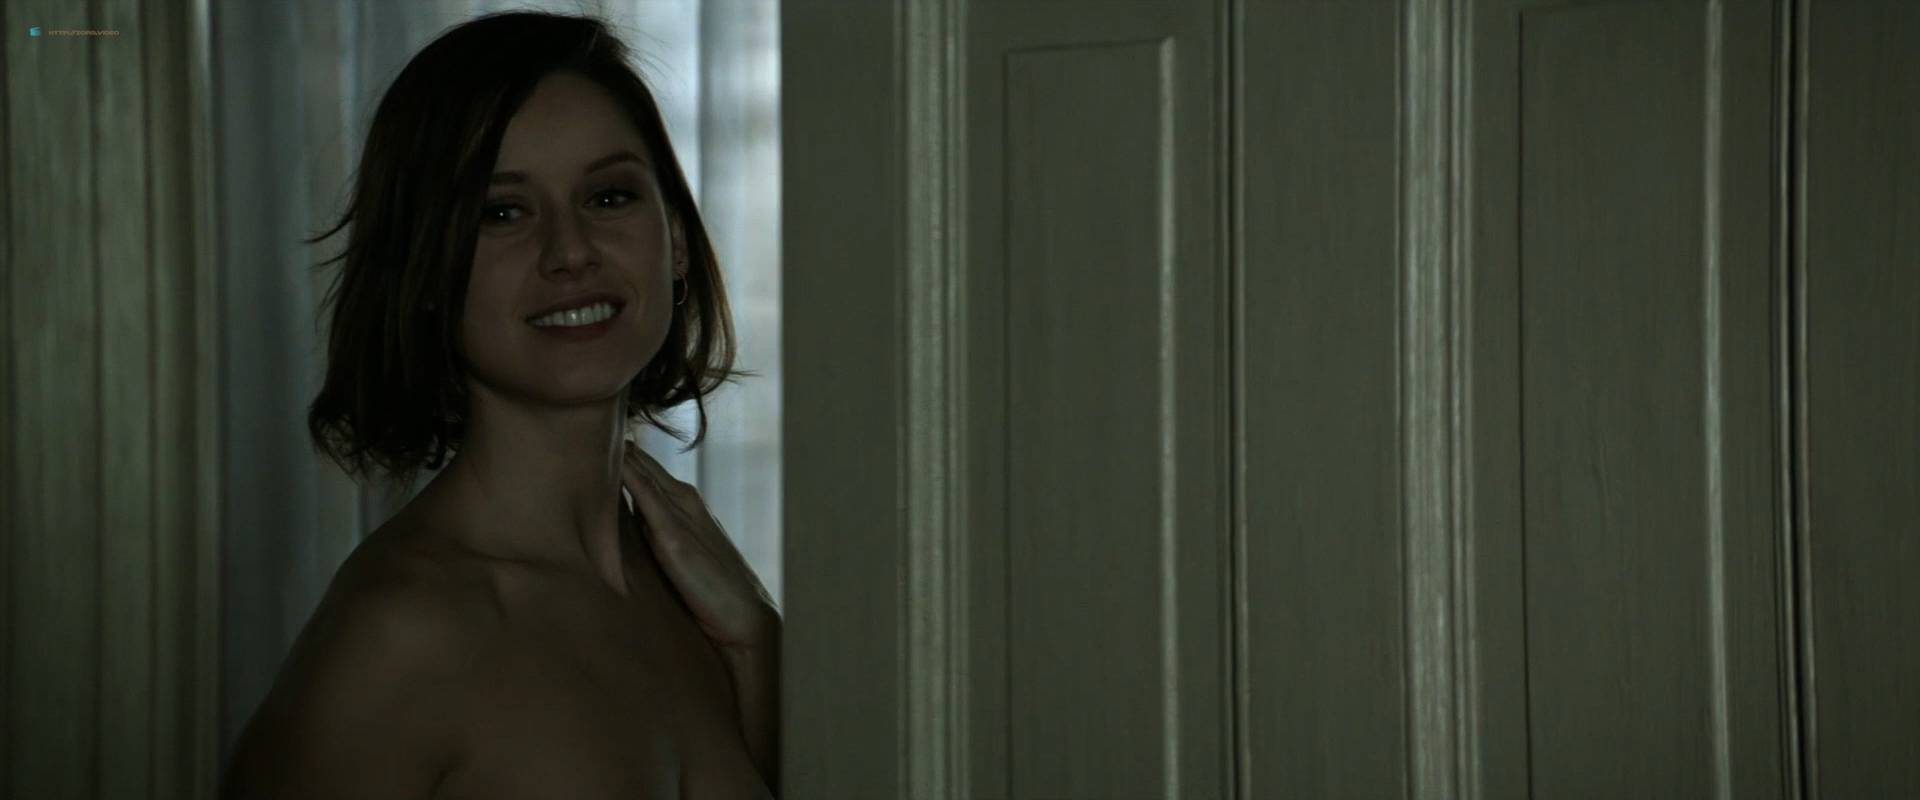 Manuela-Velles-nude-topless-bush-and-sex-Muse-2017-HD-1080p-BluRay-007.jpg